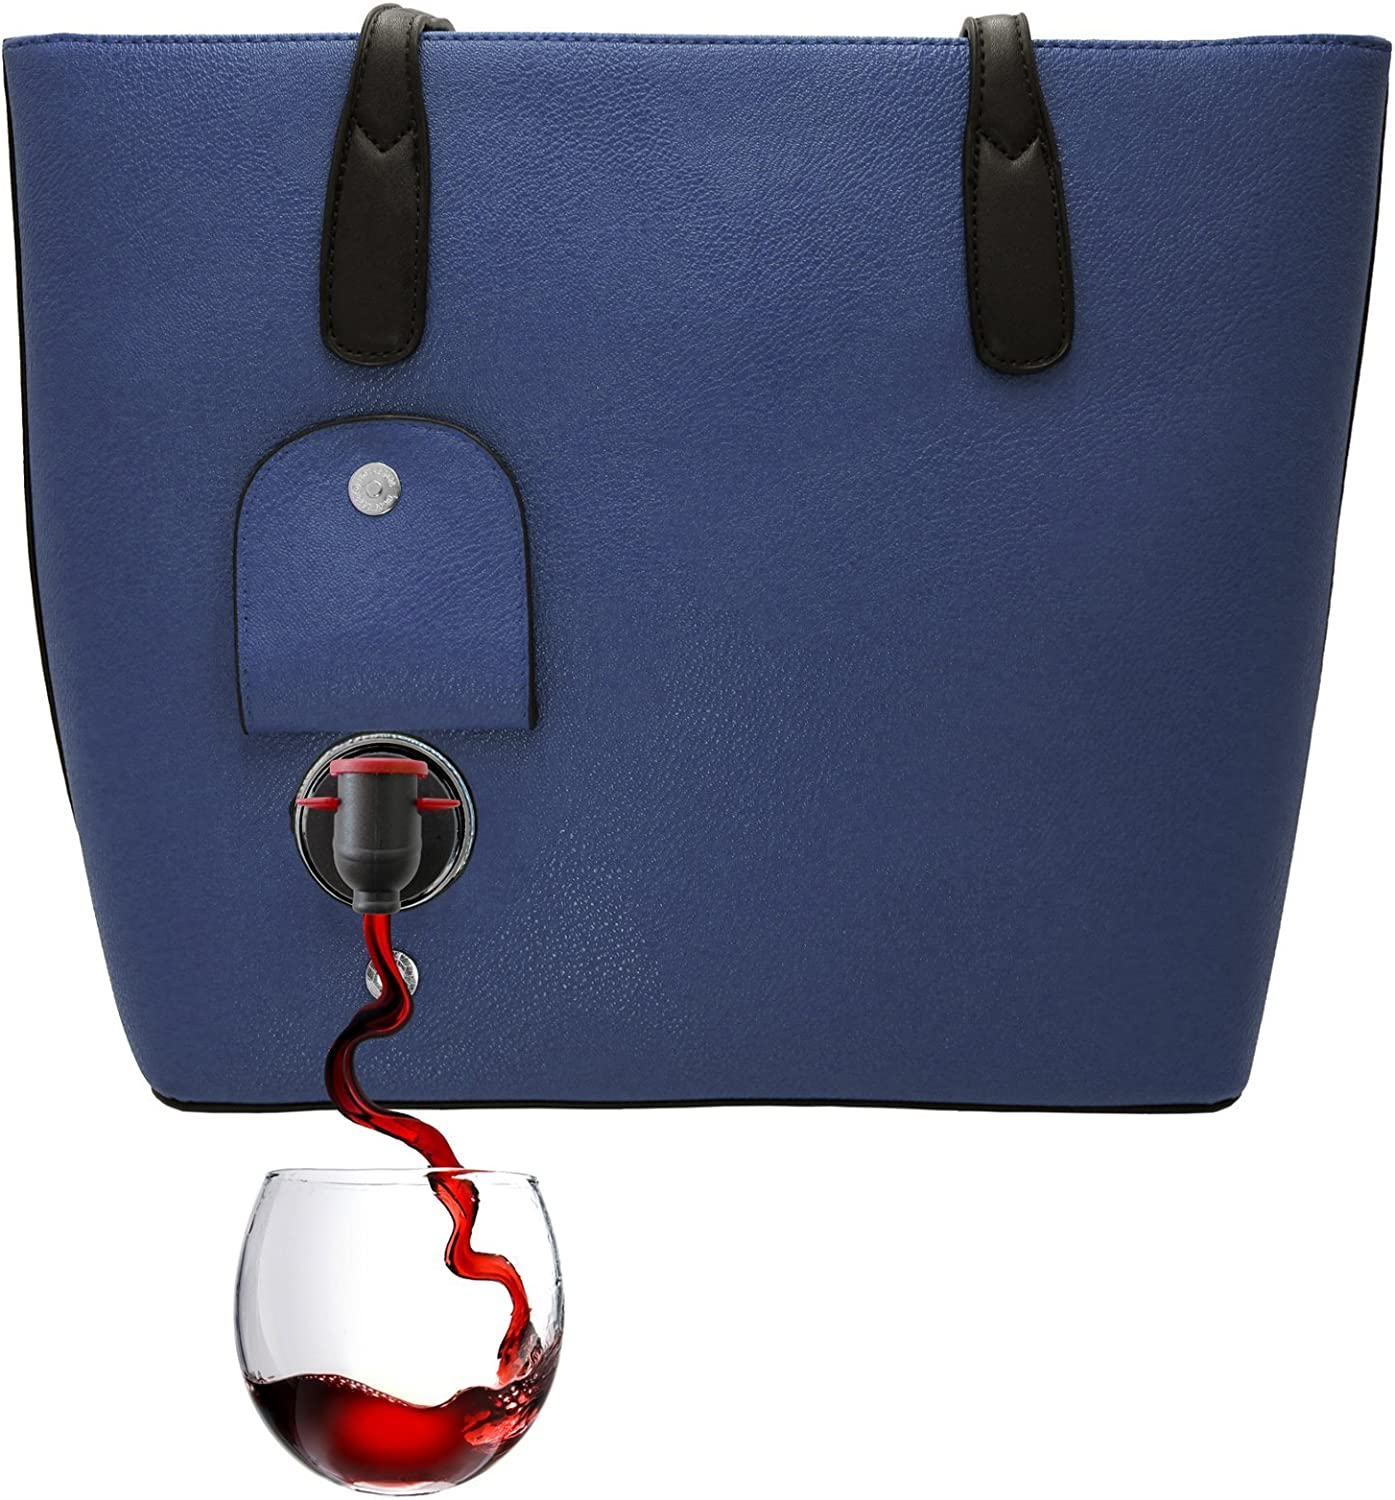 PortoVino Wine Purse (Blue) - Fashionable purse with Hidden, Insulated Compartment, Holds 2 bottles of Wine! / Great Gift! / Happiness Guaranteed!